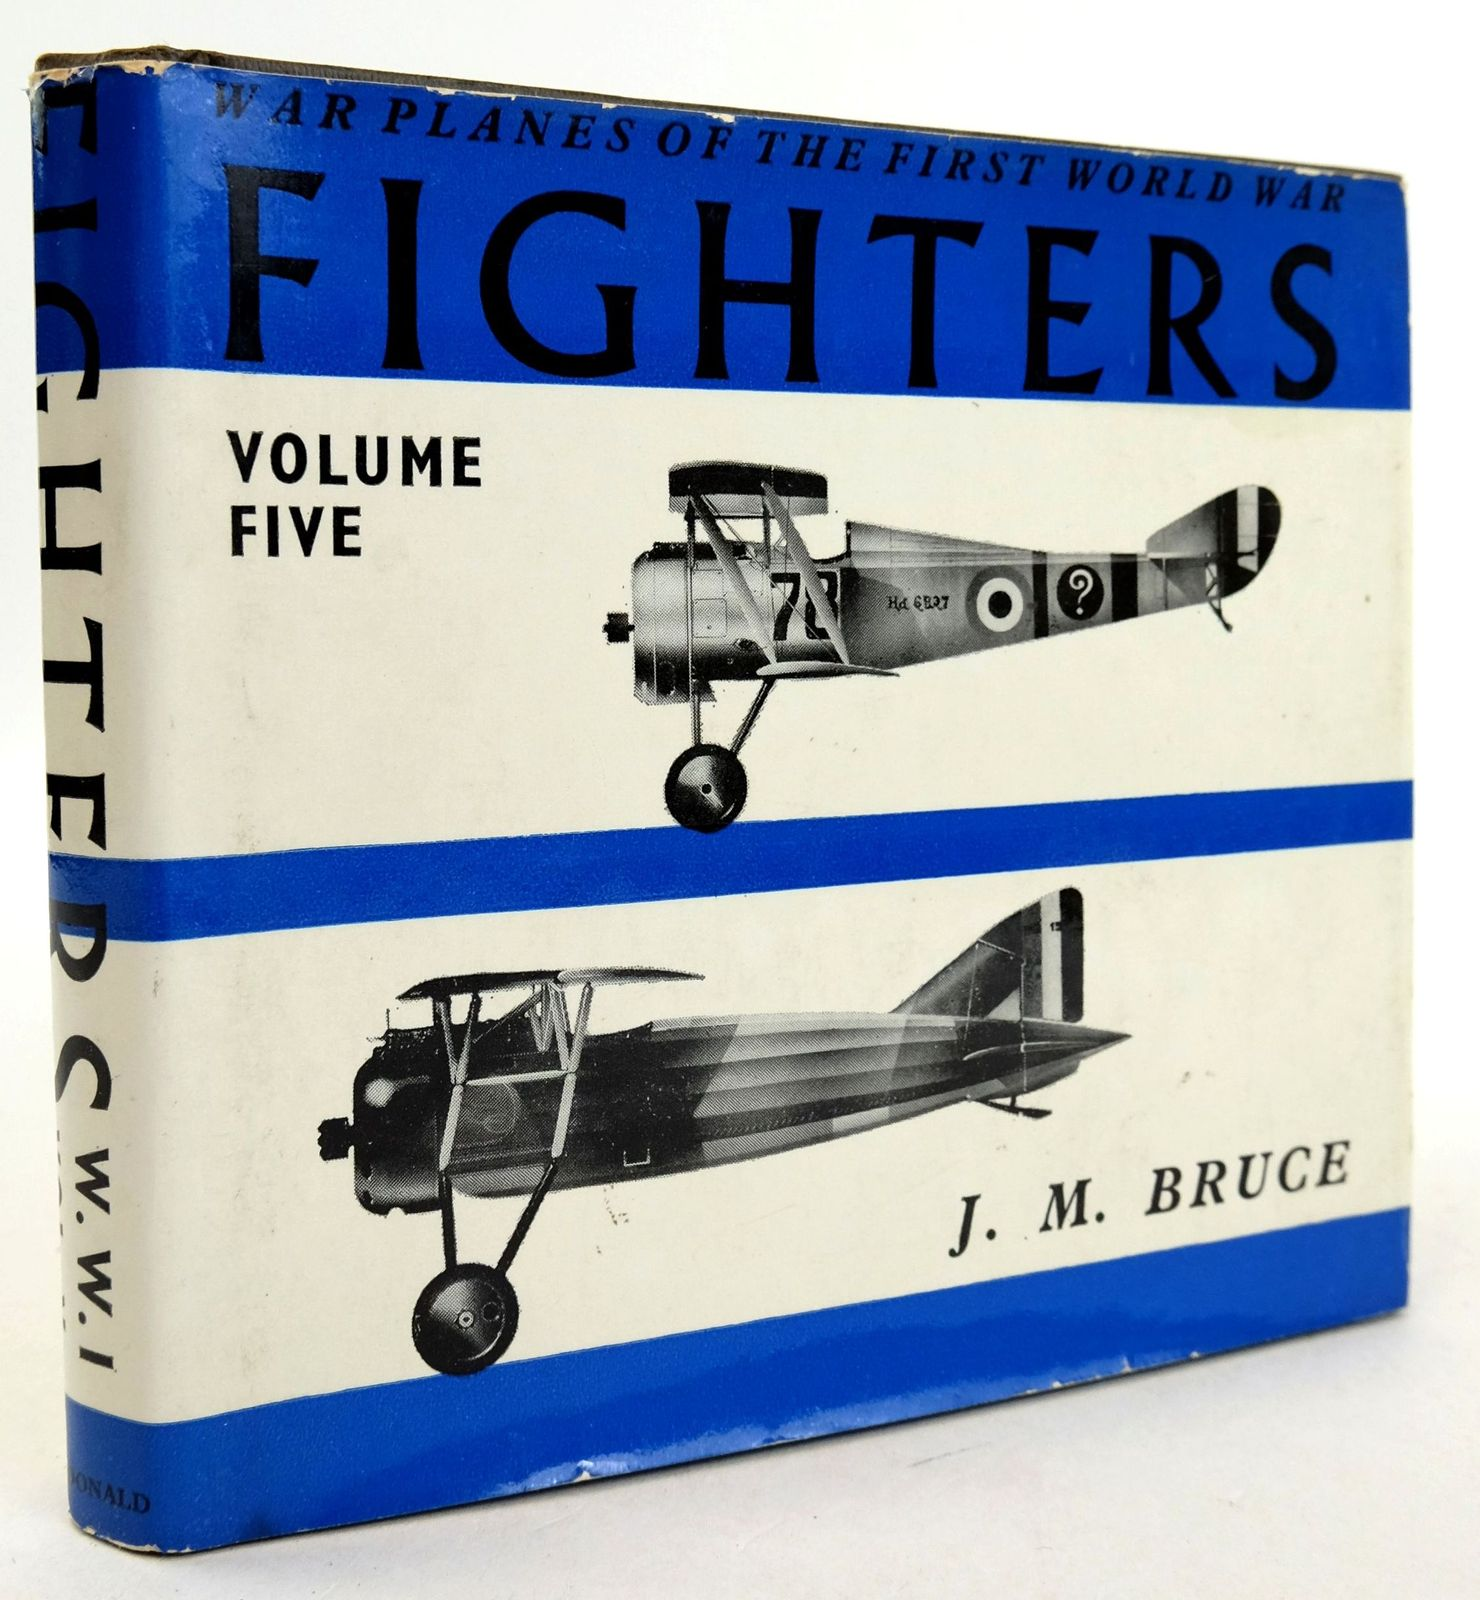 Photo of WAR PLANES OF THE FIRST WORLD WAR FIGHTERS VOLUME FIVE: FRANCE written by Bruce, J.M. published by MacDonald (STOCK CODE: 1819727)  for sale by Stella & Rose's Books